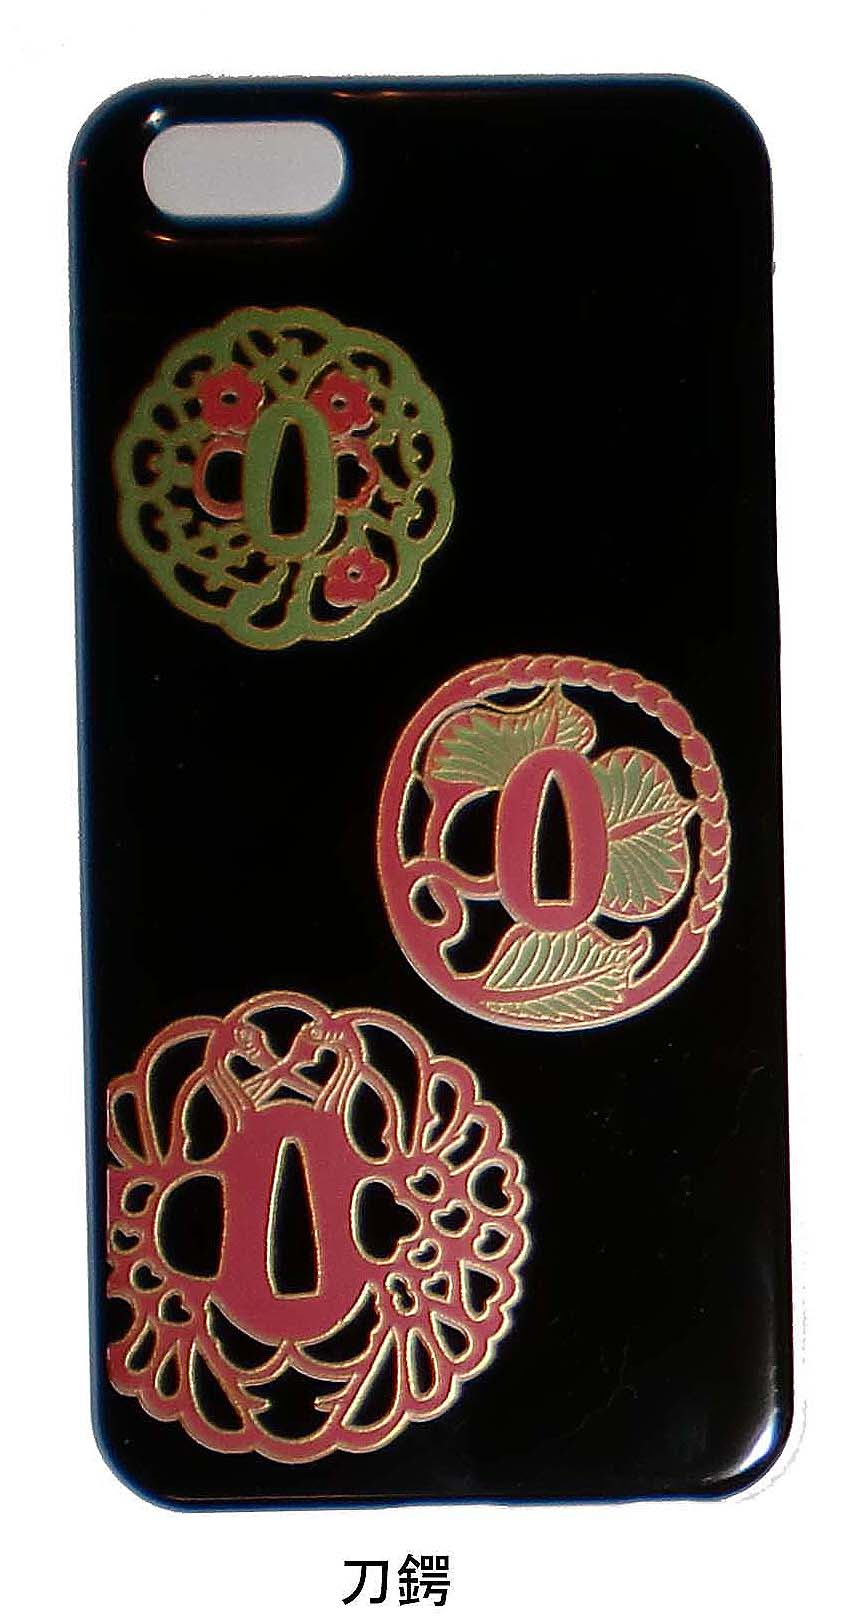 For iPhone 5, Urushi Japanese Inspired iPhone case